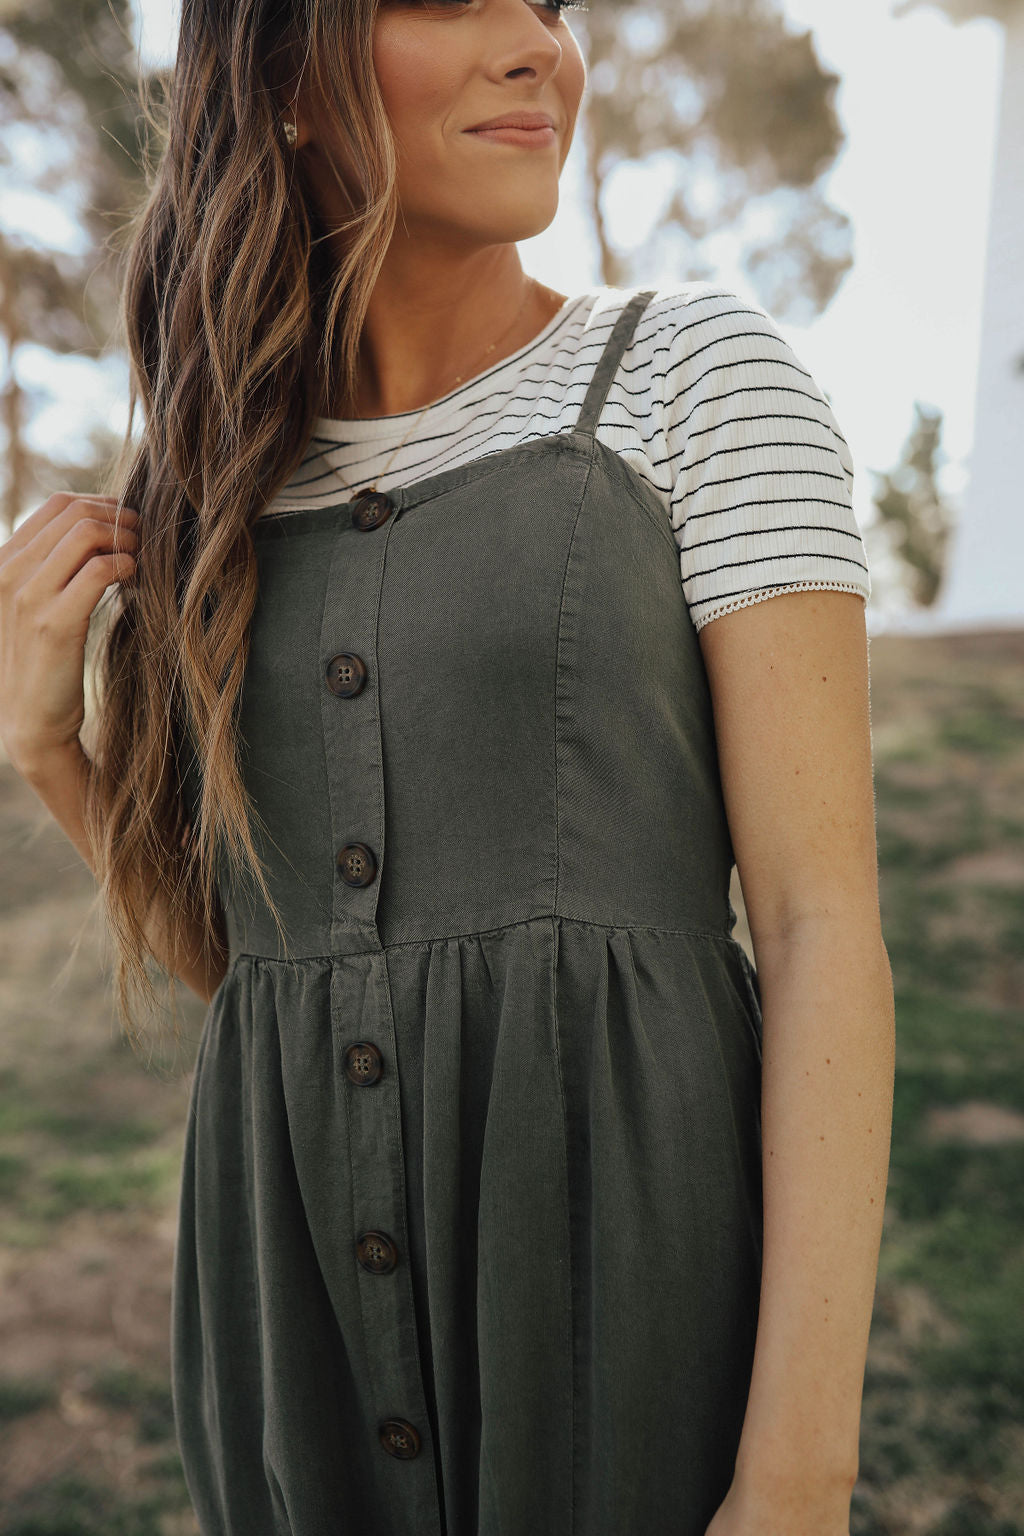 THE CHENEY SLEEVELESS DRESS IN OLIVE